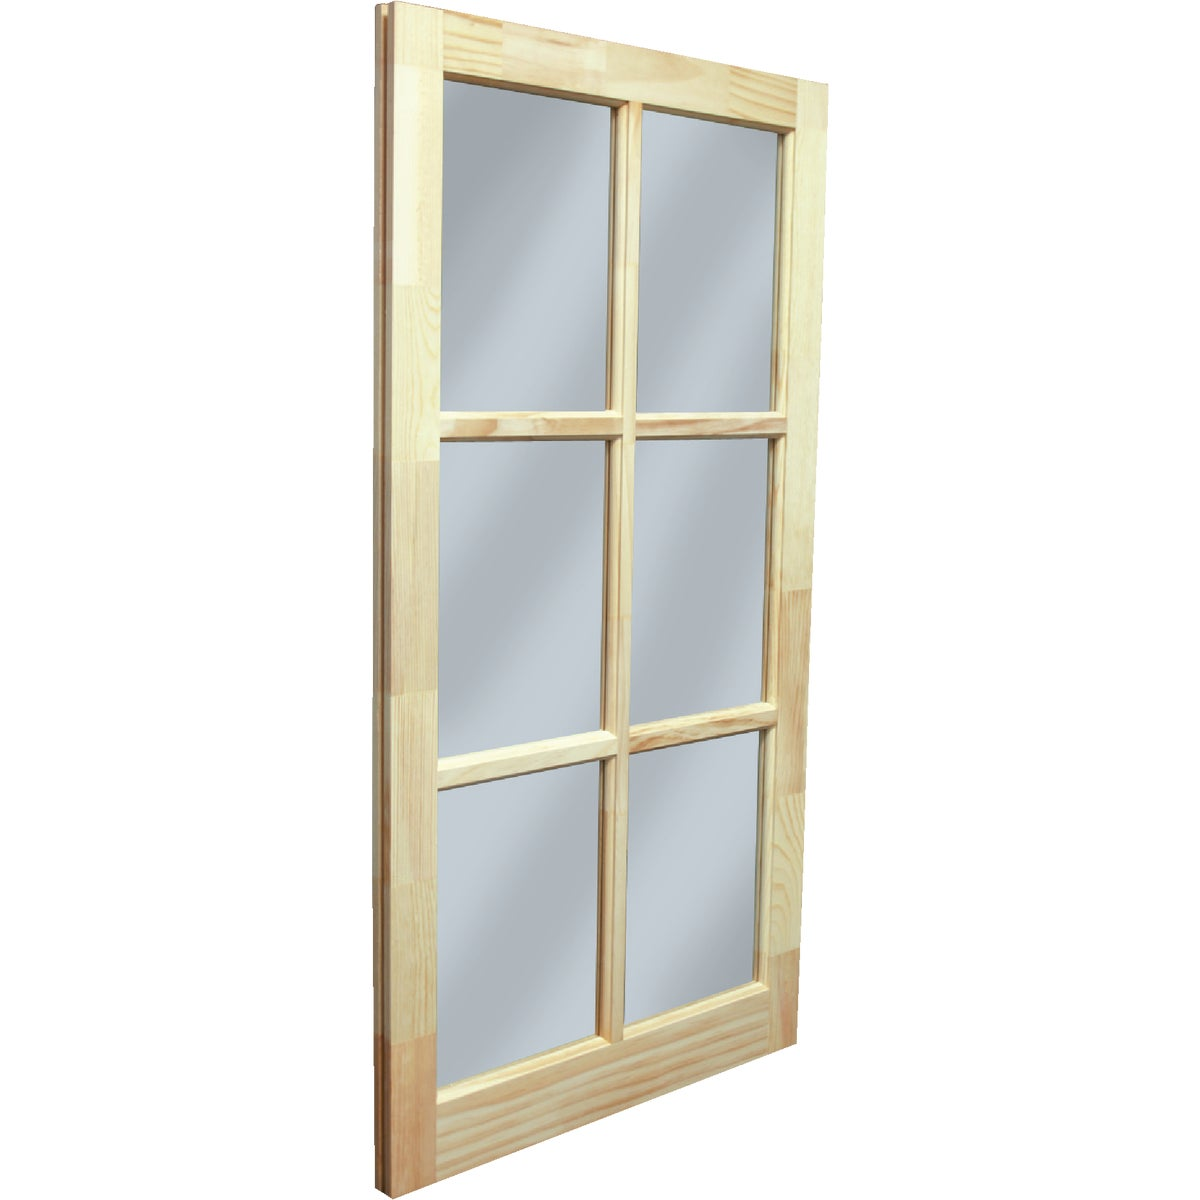 22X41 WOOD BARN SASH - BSW2241 by Northview Window